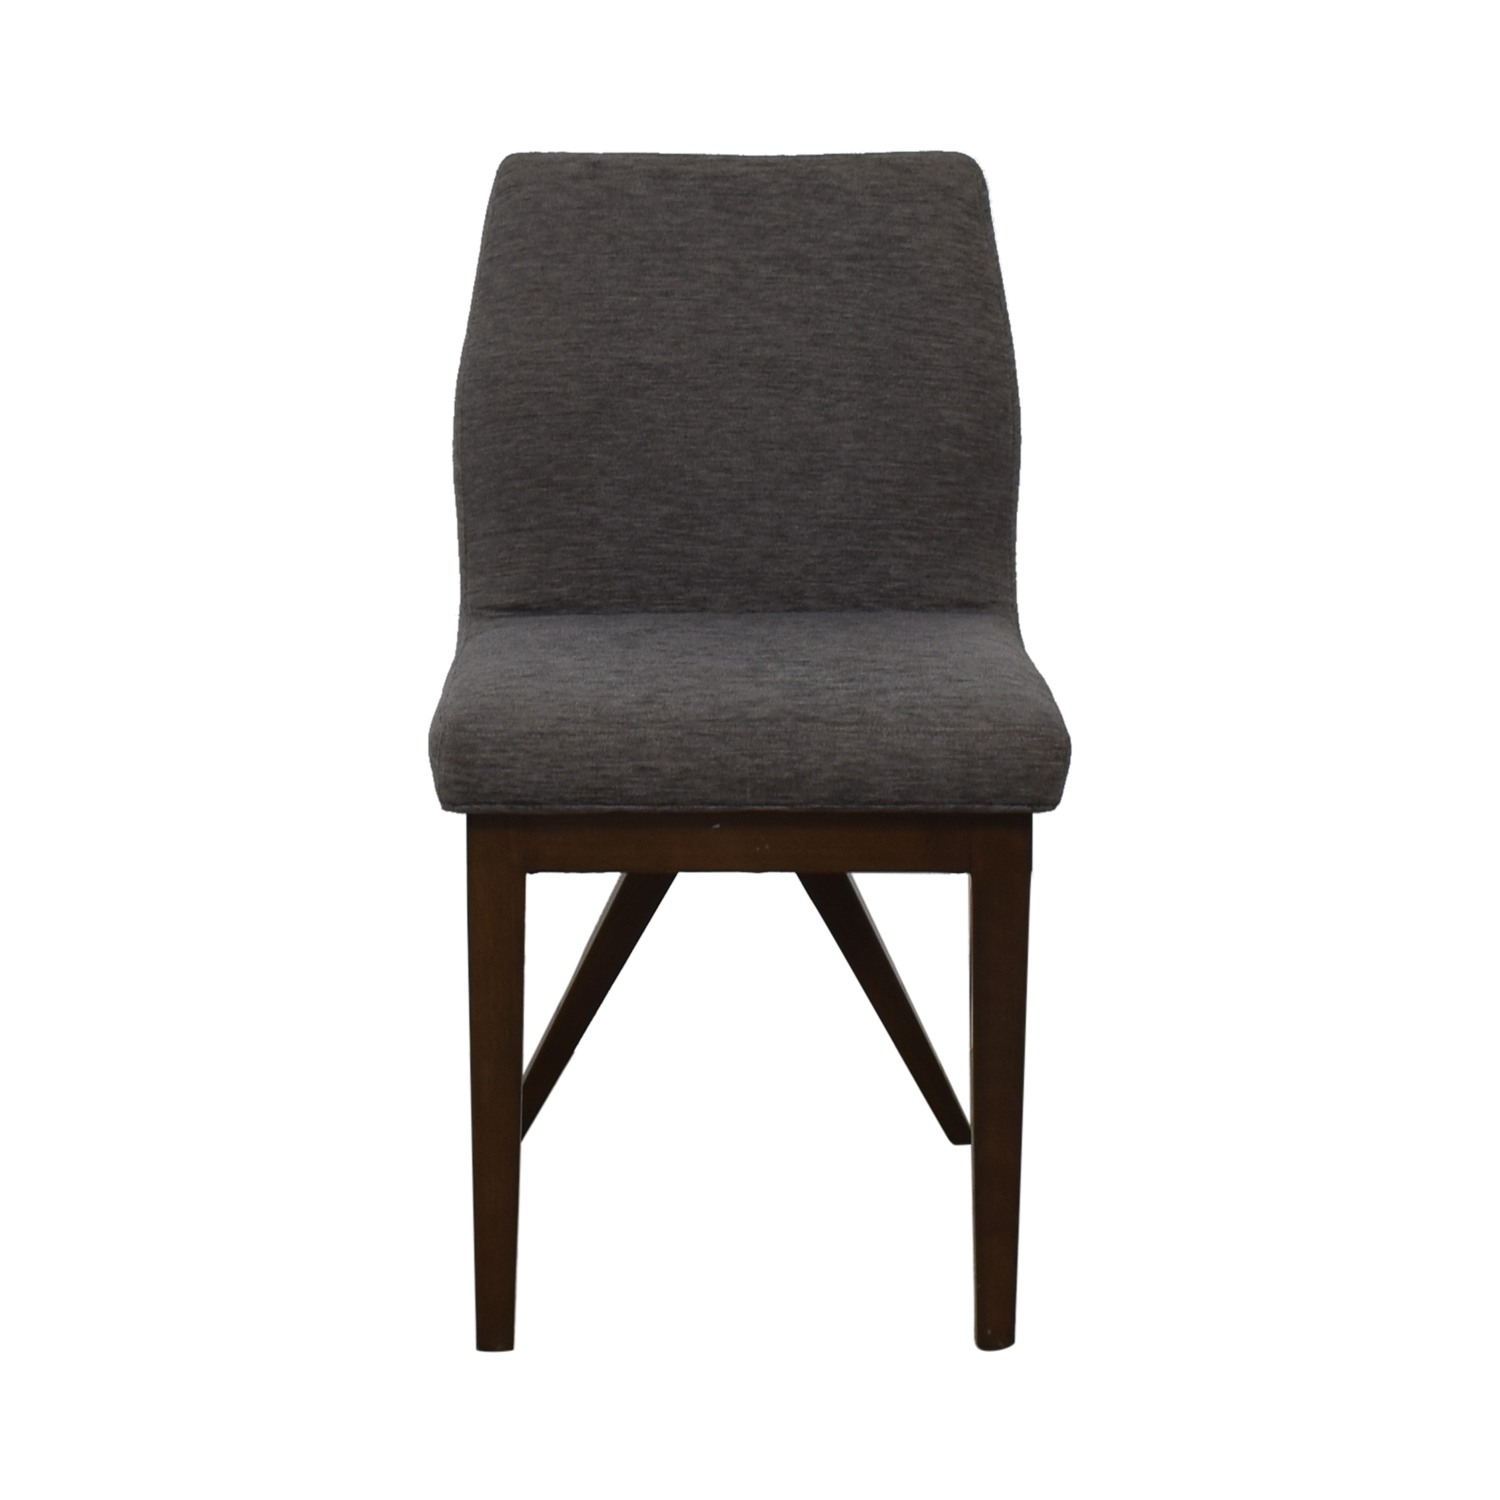 buy Furniture Masters Furniture Masters Mid Century Gray Chair online